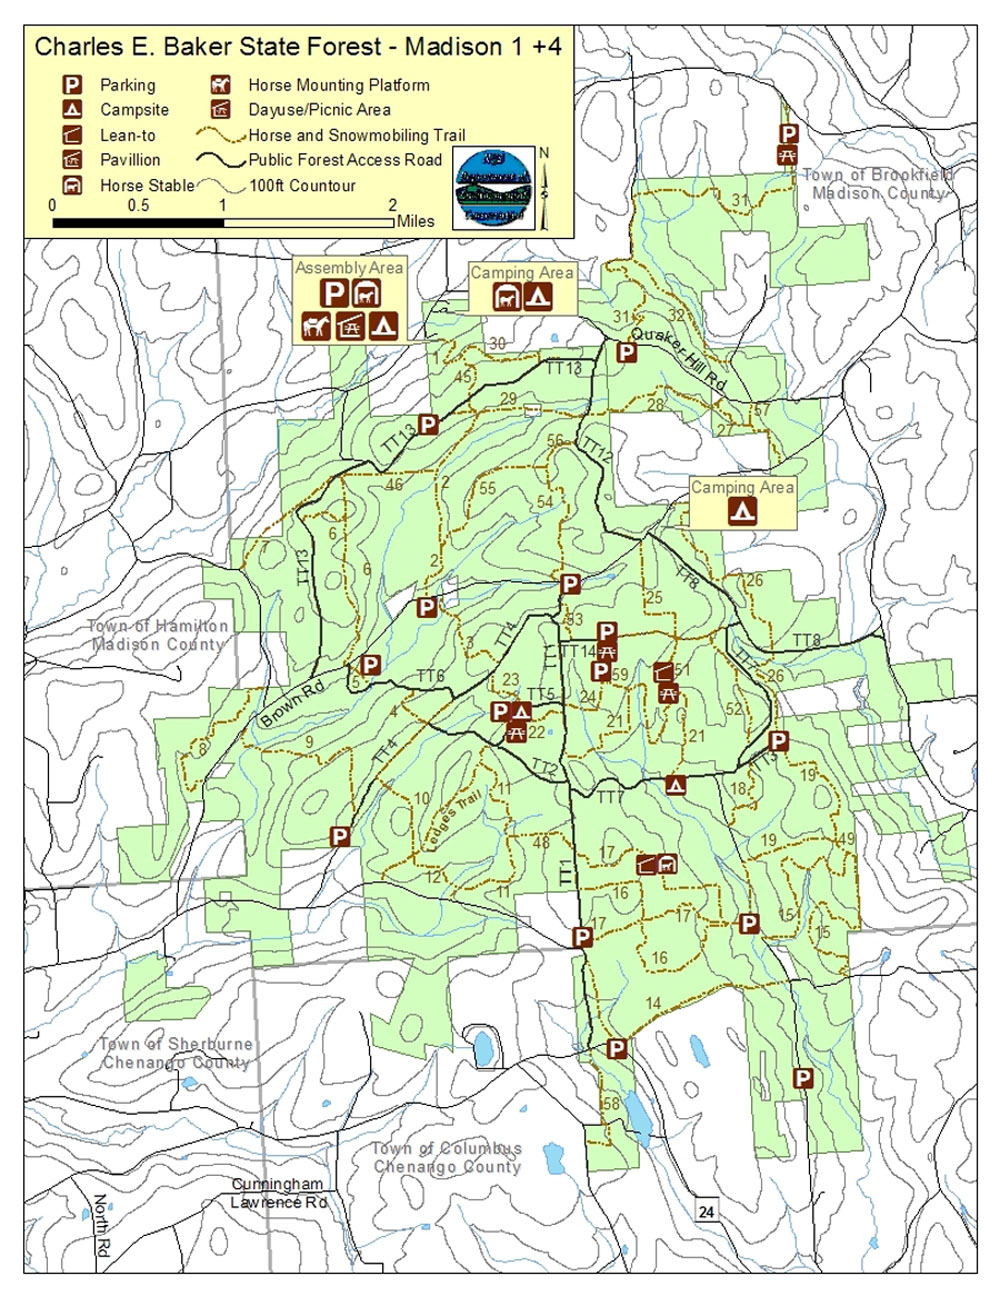 Charles Baker State Forest topographic map